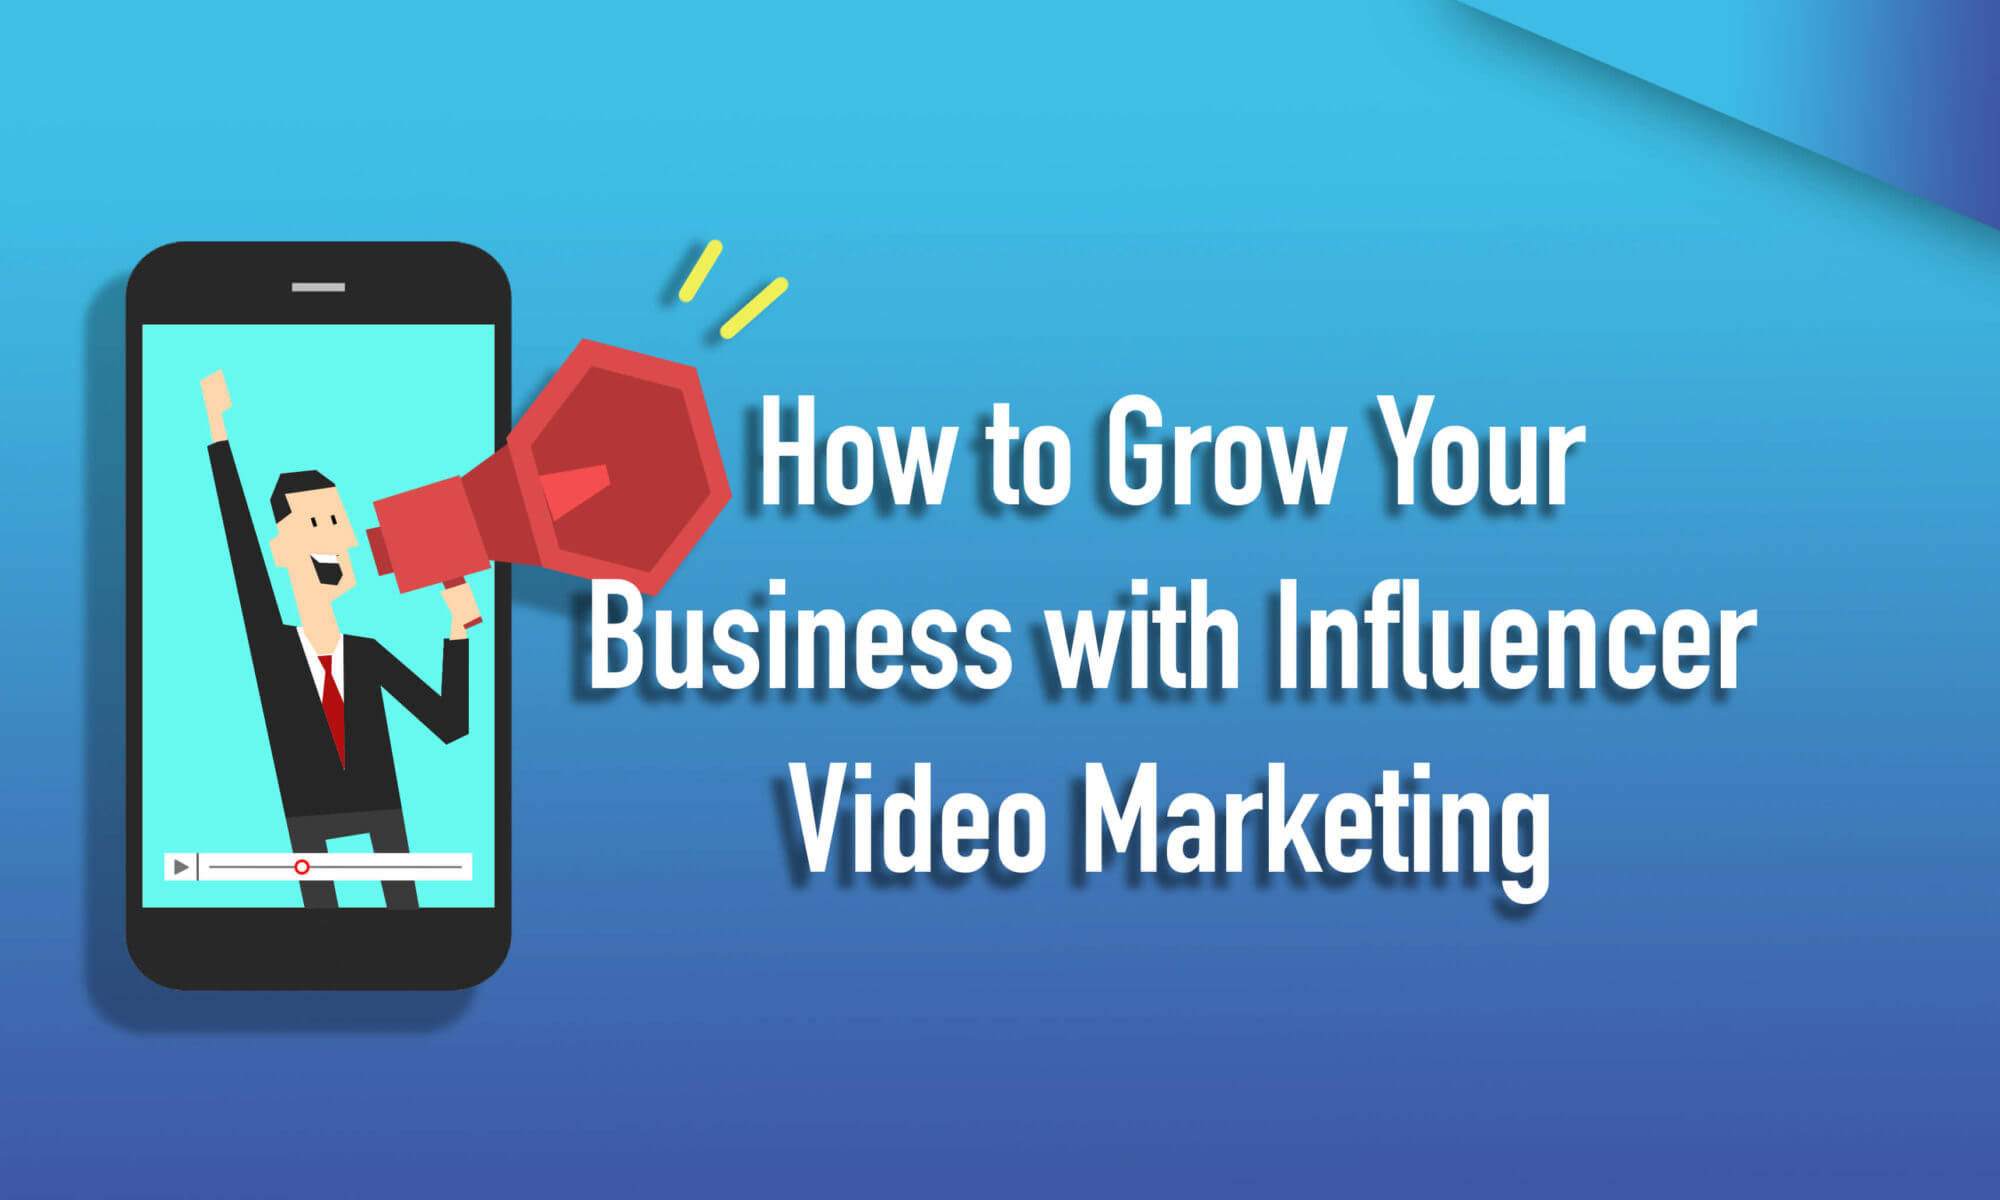 Influencer Video Marketing: The Definitive Guide